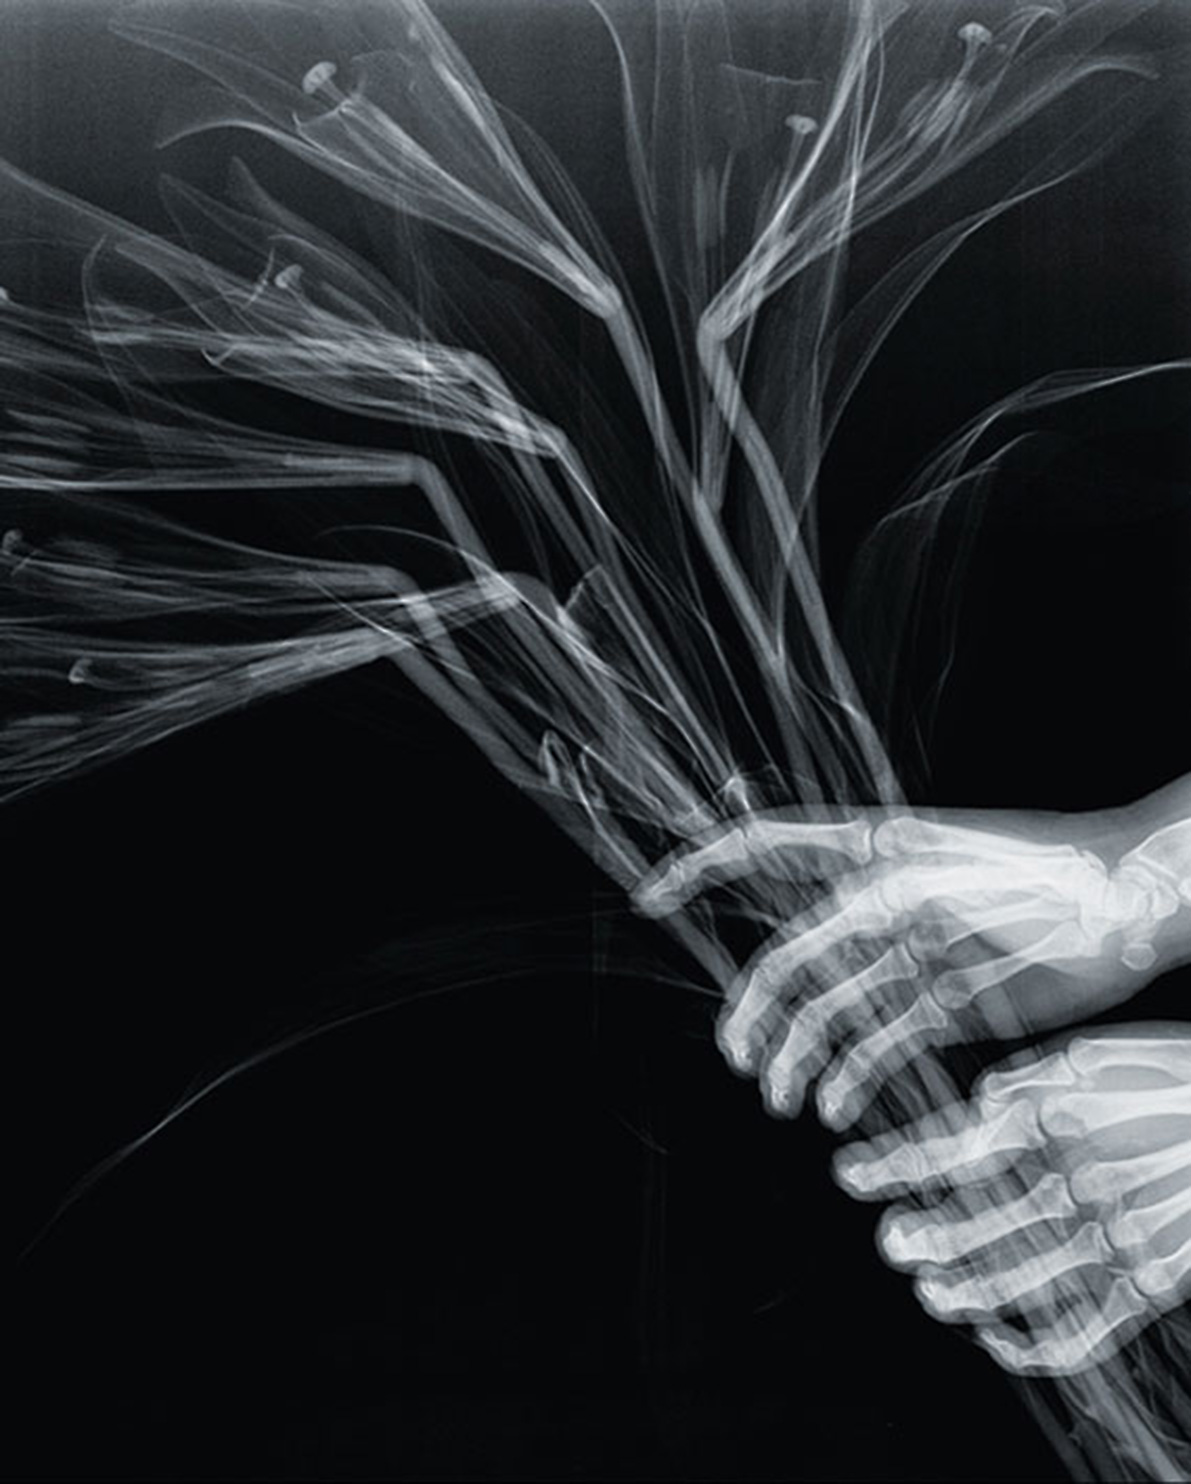 Grotesque & Arabesque (Hands with Lilies), lambda duratrans, x-ray, light box, 42,5 x 52,5 cm